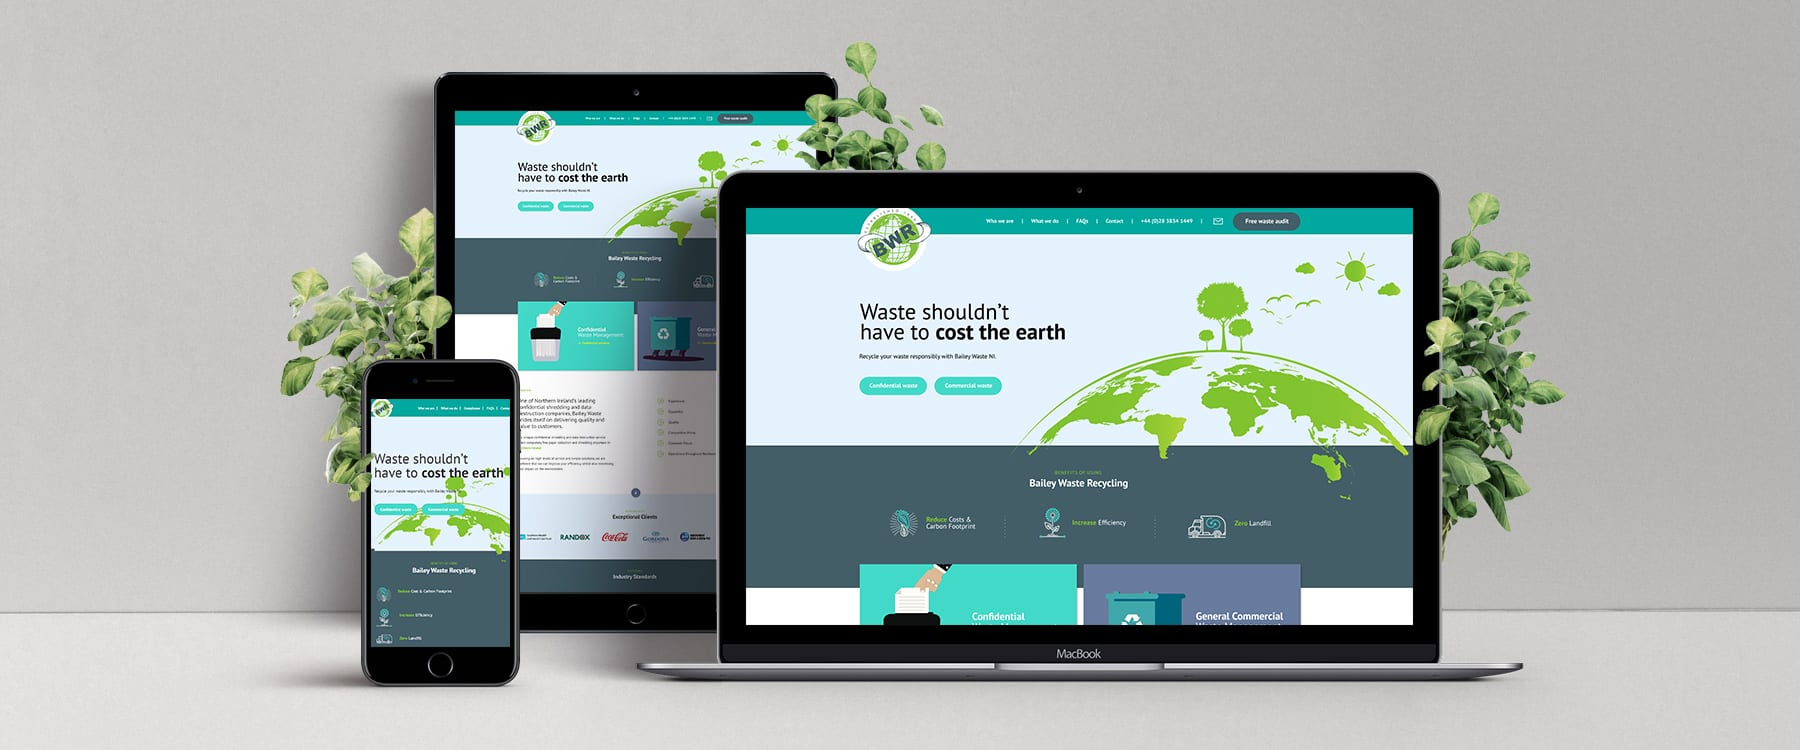 New Contemporary Web Design for Bailey Waste Recycling Image